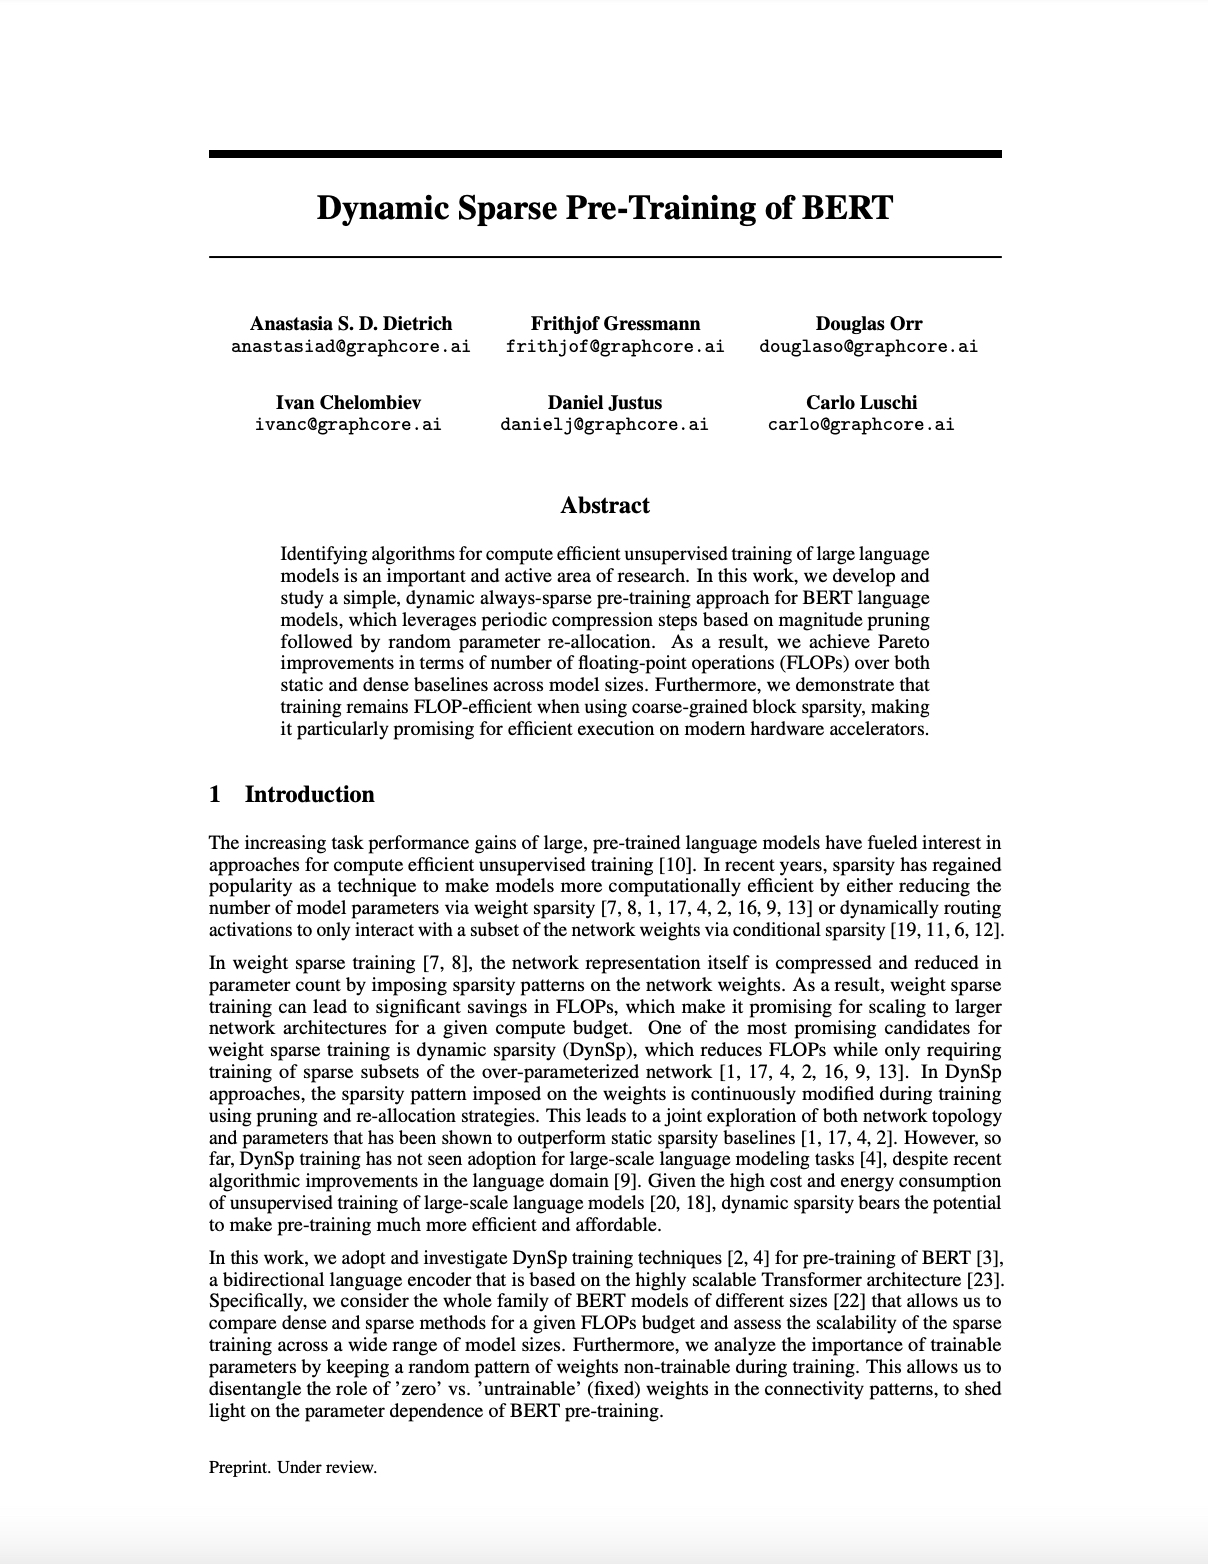 Graphcore Research: Dynamic Sparse Pre-Training of BERT